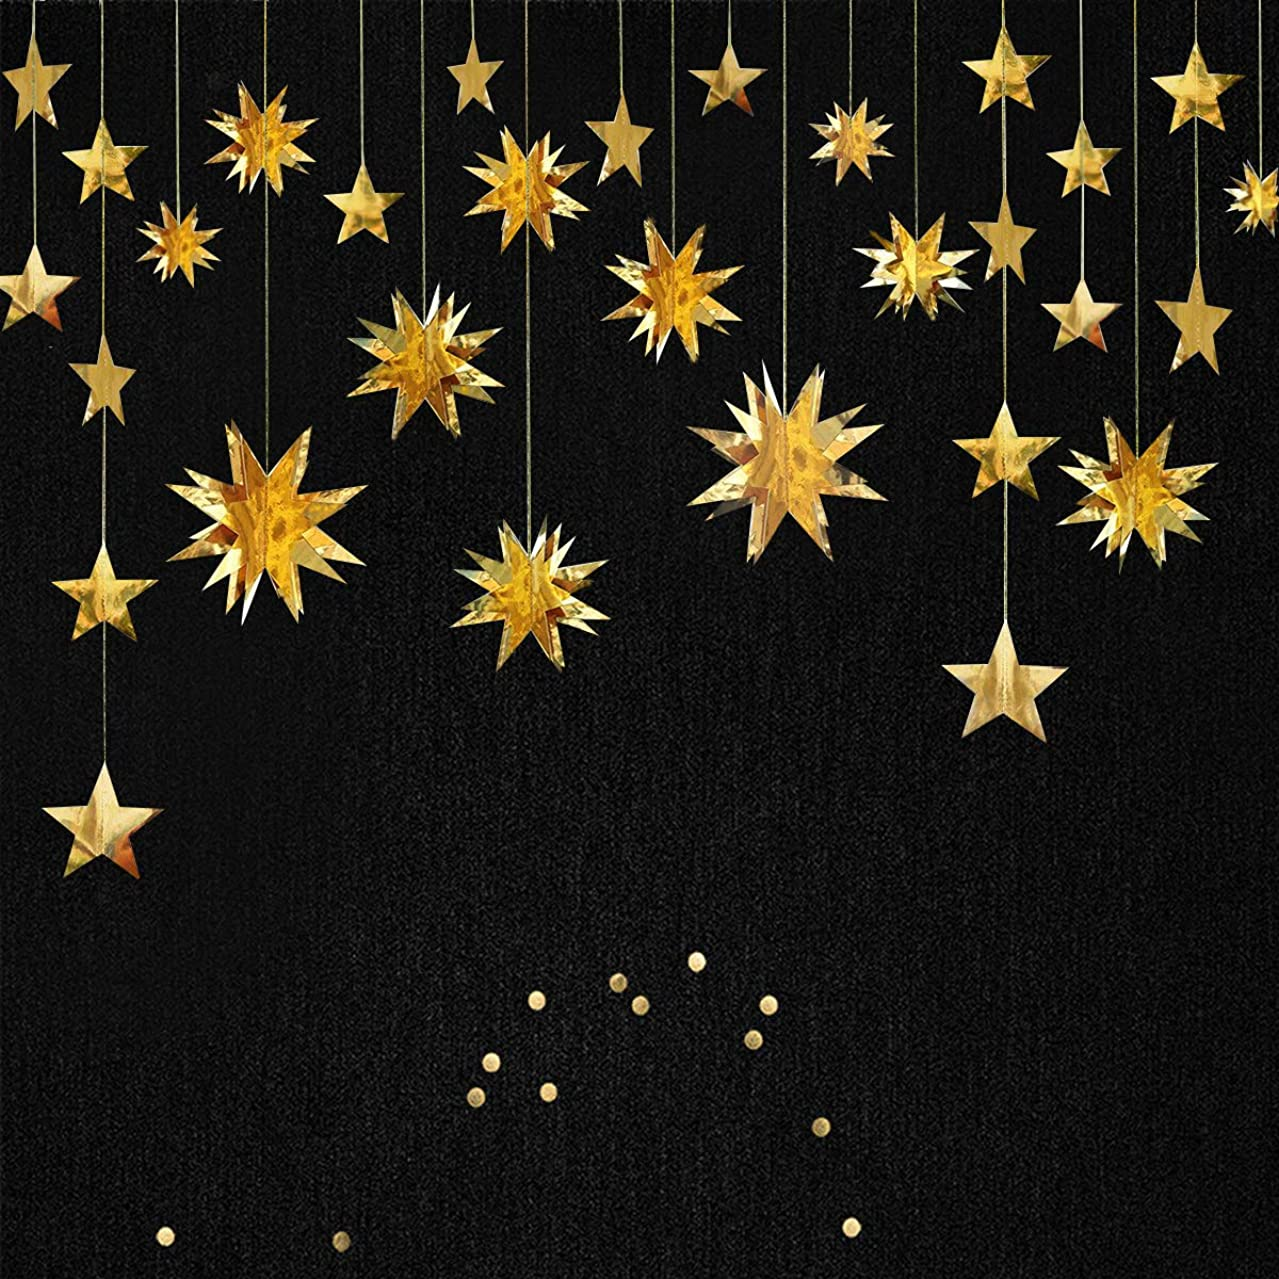 Gold Decorations Kit,Star Paper Garland,3D Stars Party Decor,Metallic Bunting Banner-Holiday Supplies,Birthday,Wedding,Baby Shower,Hanging Decorations for Nursery,Kids,Girls Room by PinkBlume(4 Set).…